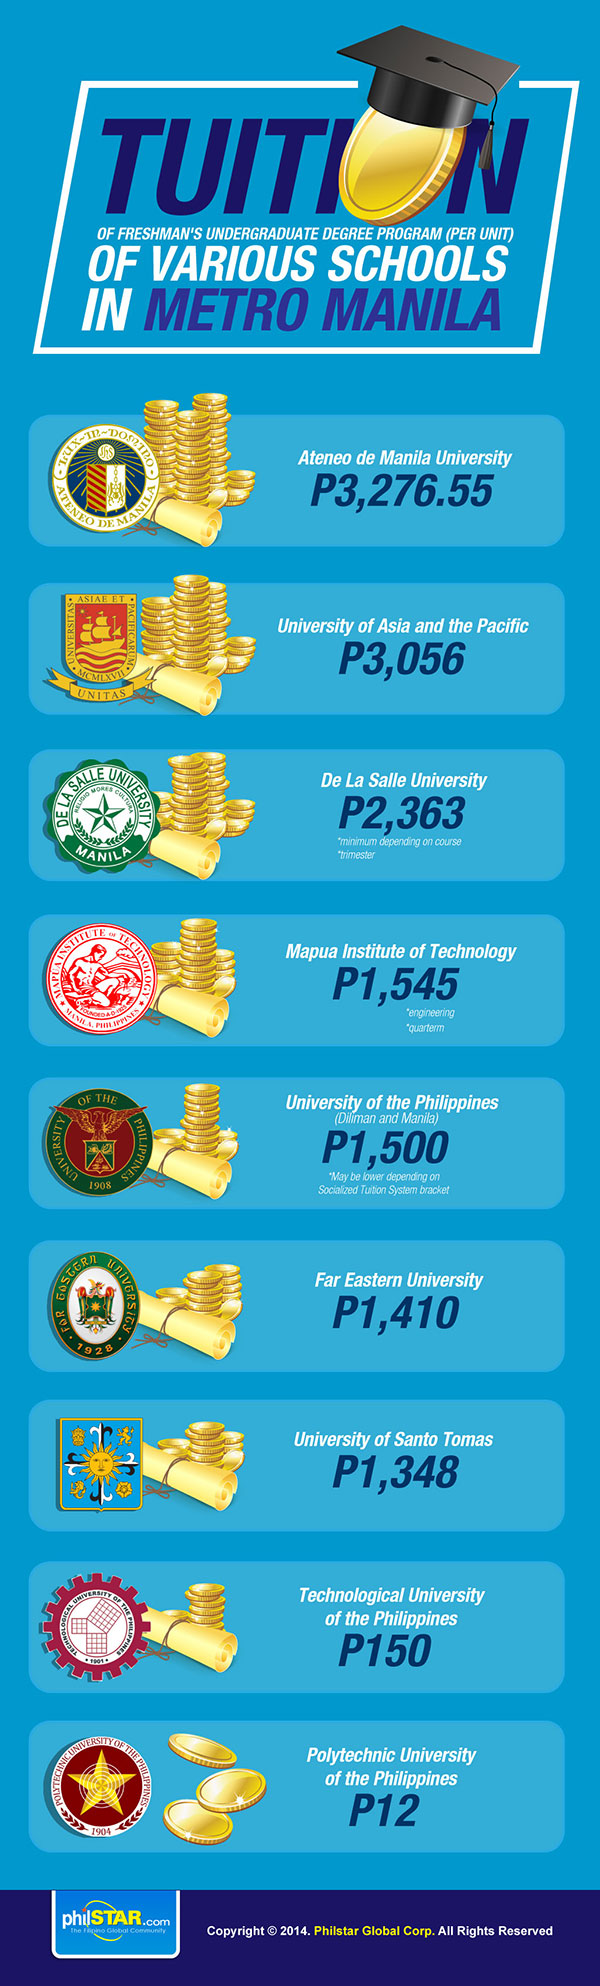 socialized tuition and financial assistance program This up administration responded by fast-tracking the revision of the socialized  tuition and financial assistance program (stfap) and.